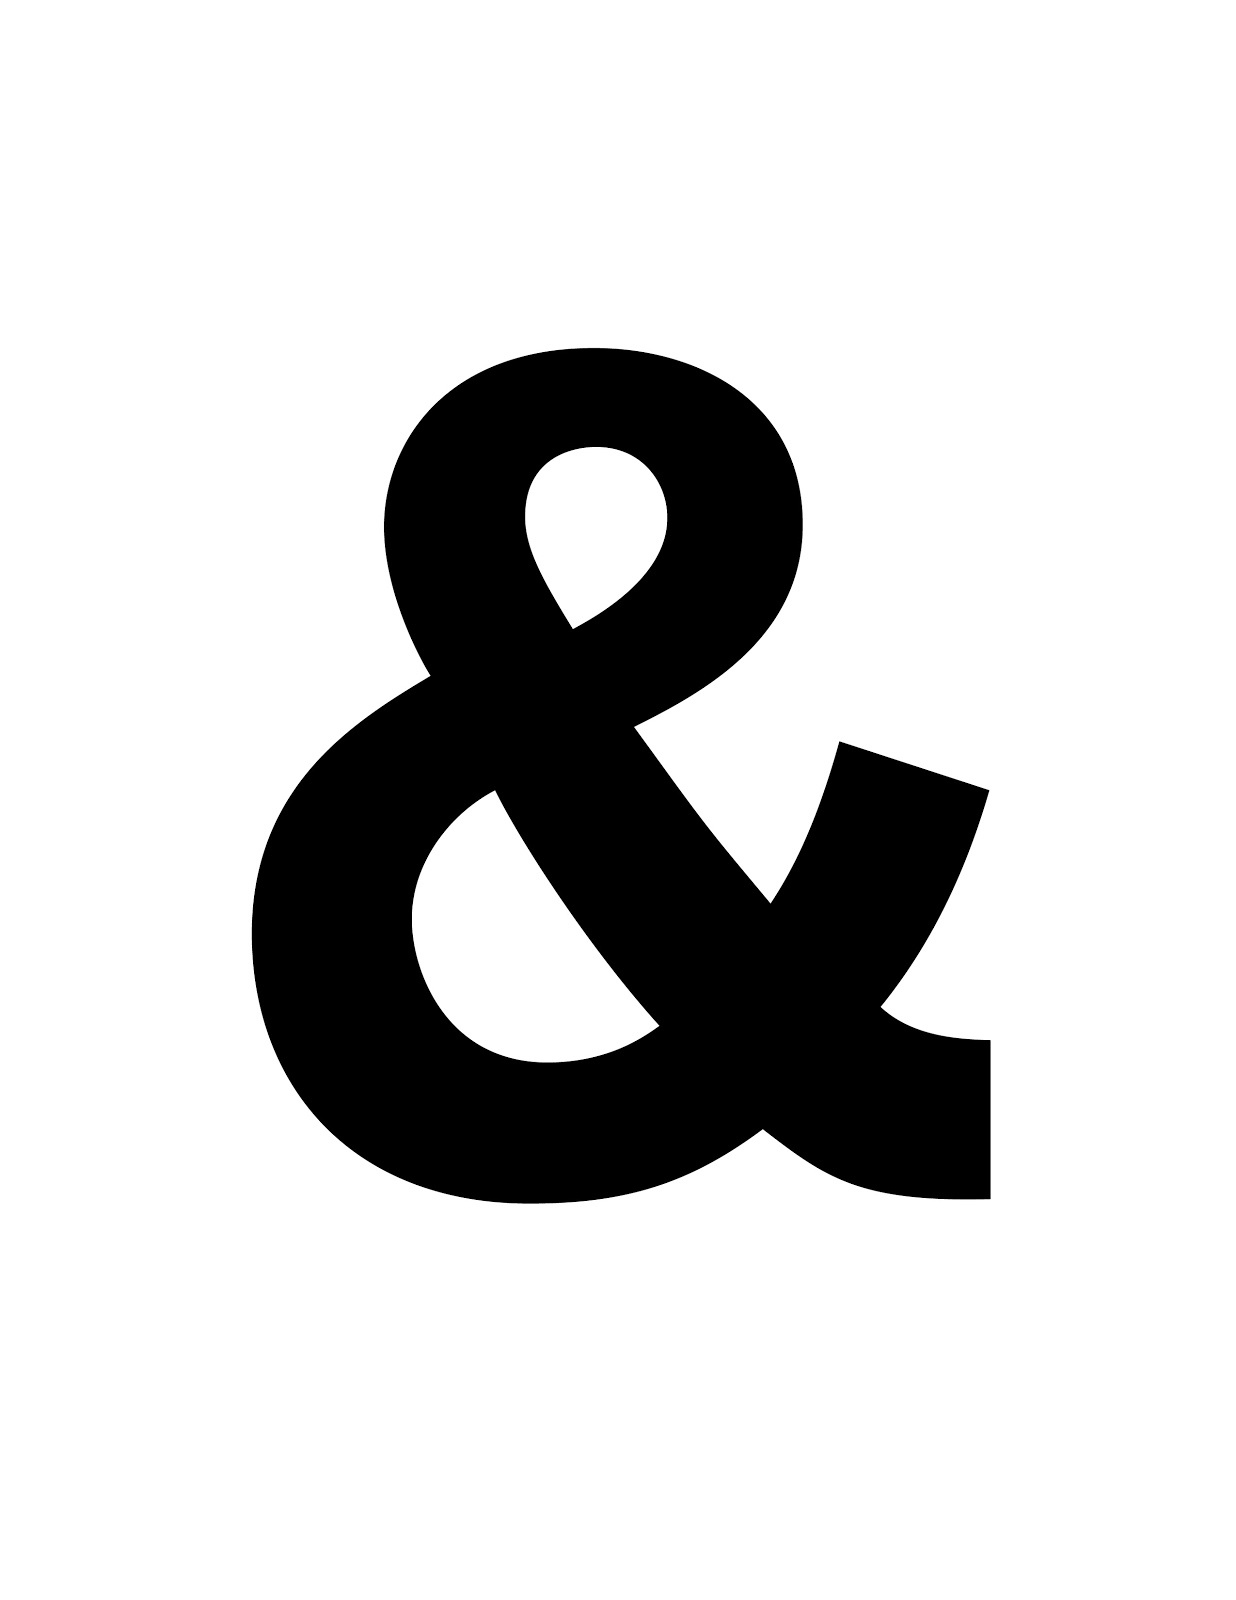 Free Ampersand Cliparts, Download Free Clip Art, Free Clip Art On - Free Printable Ampersand Symbol